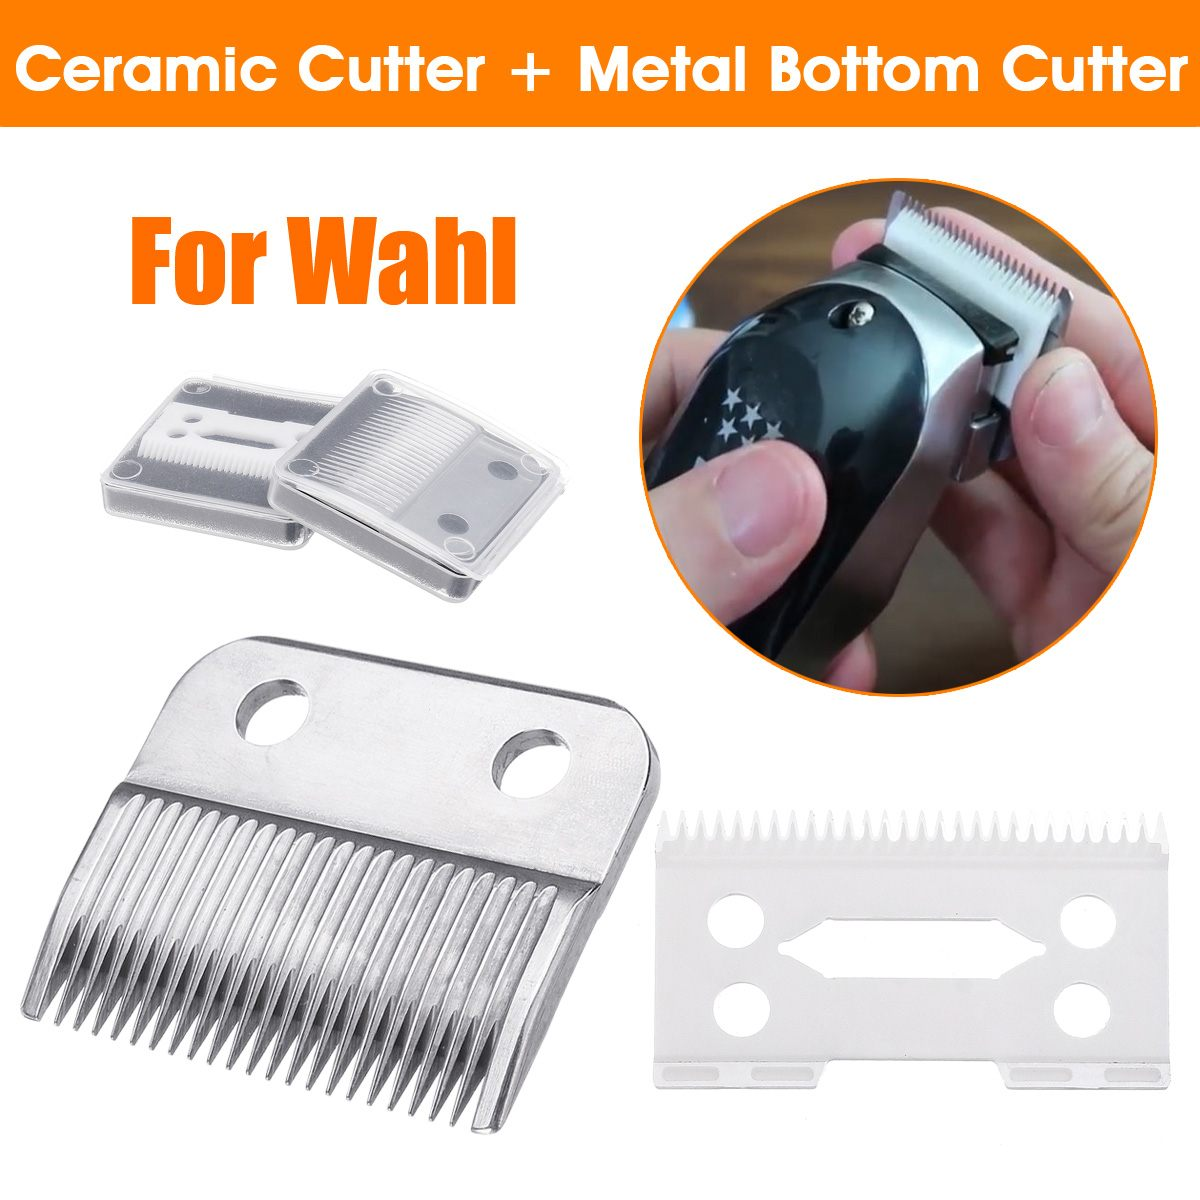 2Pcs Hair Beard Ceramic Blade Cutter + Metal Bottom Cutter Electric Shear Replacement For Wahl Electric Shear Clipper Set Silver|Hair Trimmers| |  - title=